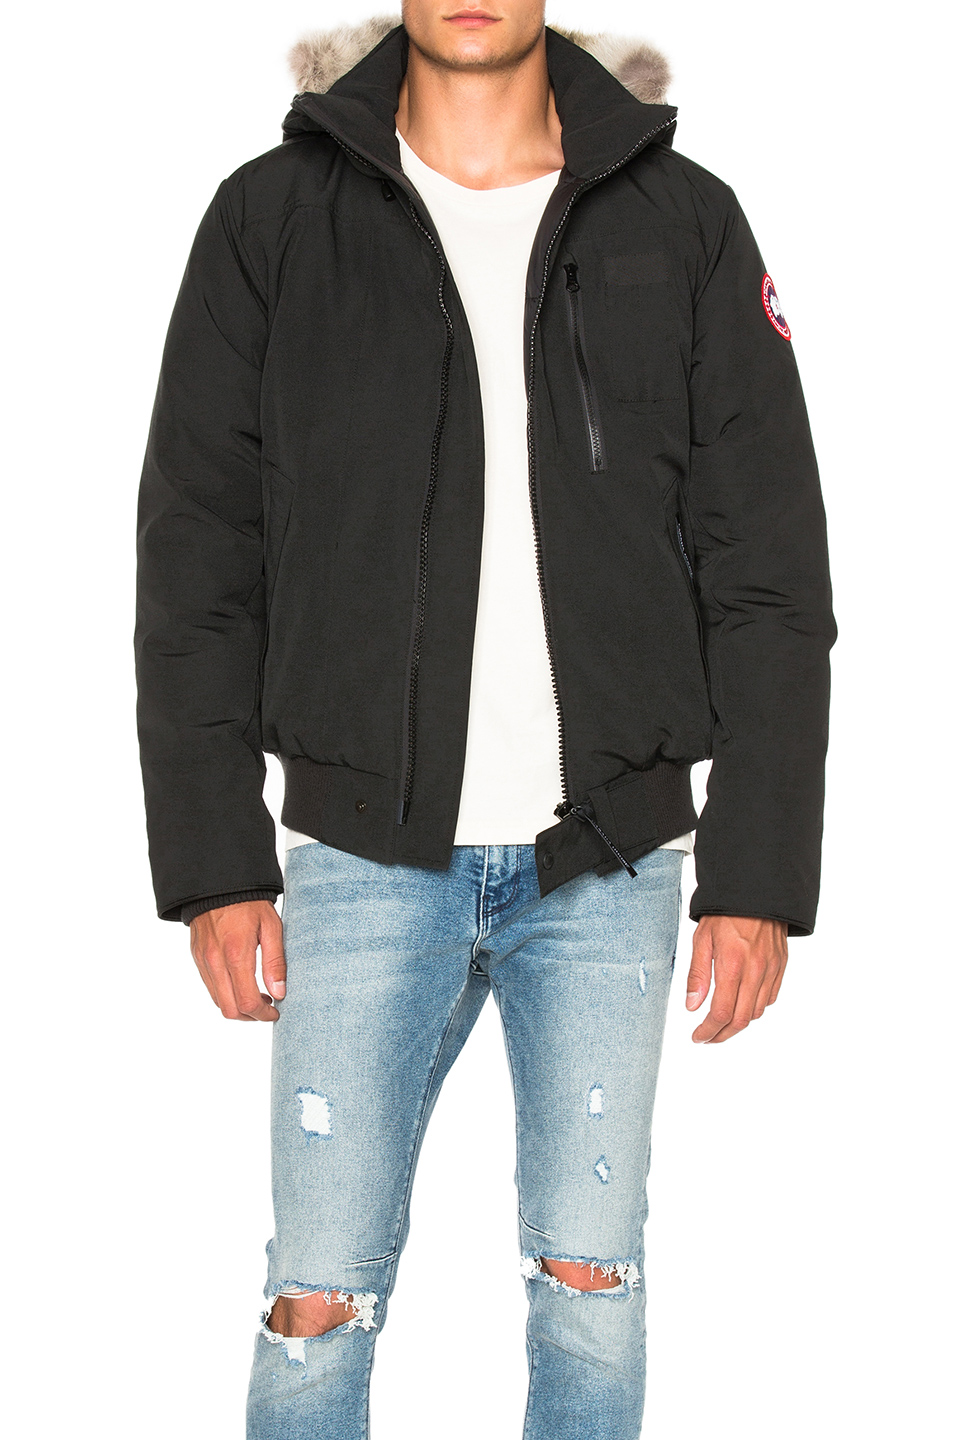 Photo of Canada Goose Borden Bomber in Black - shop Canada Goose menswear